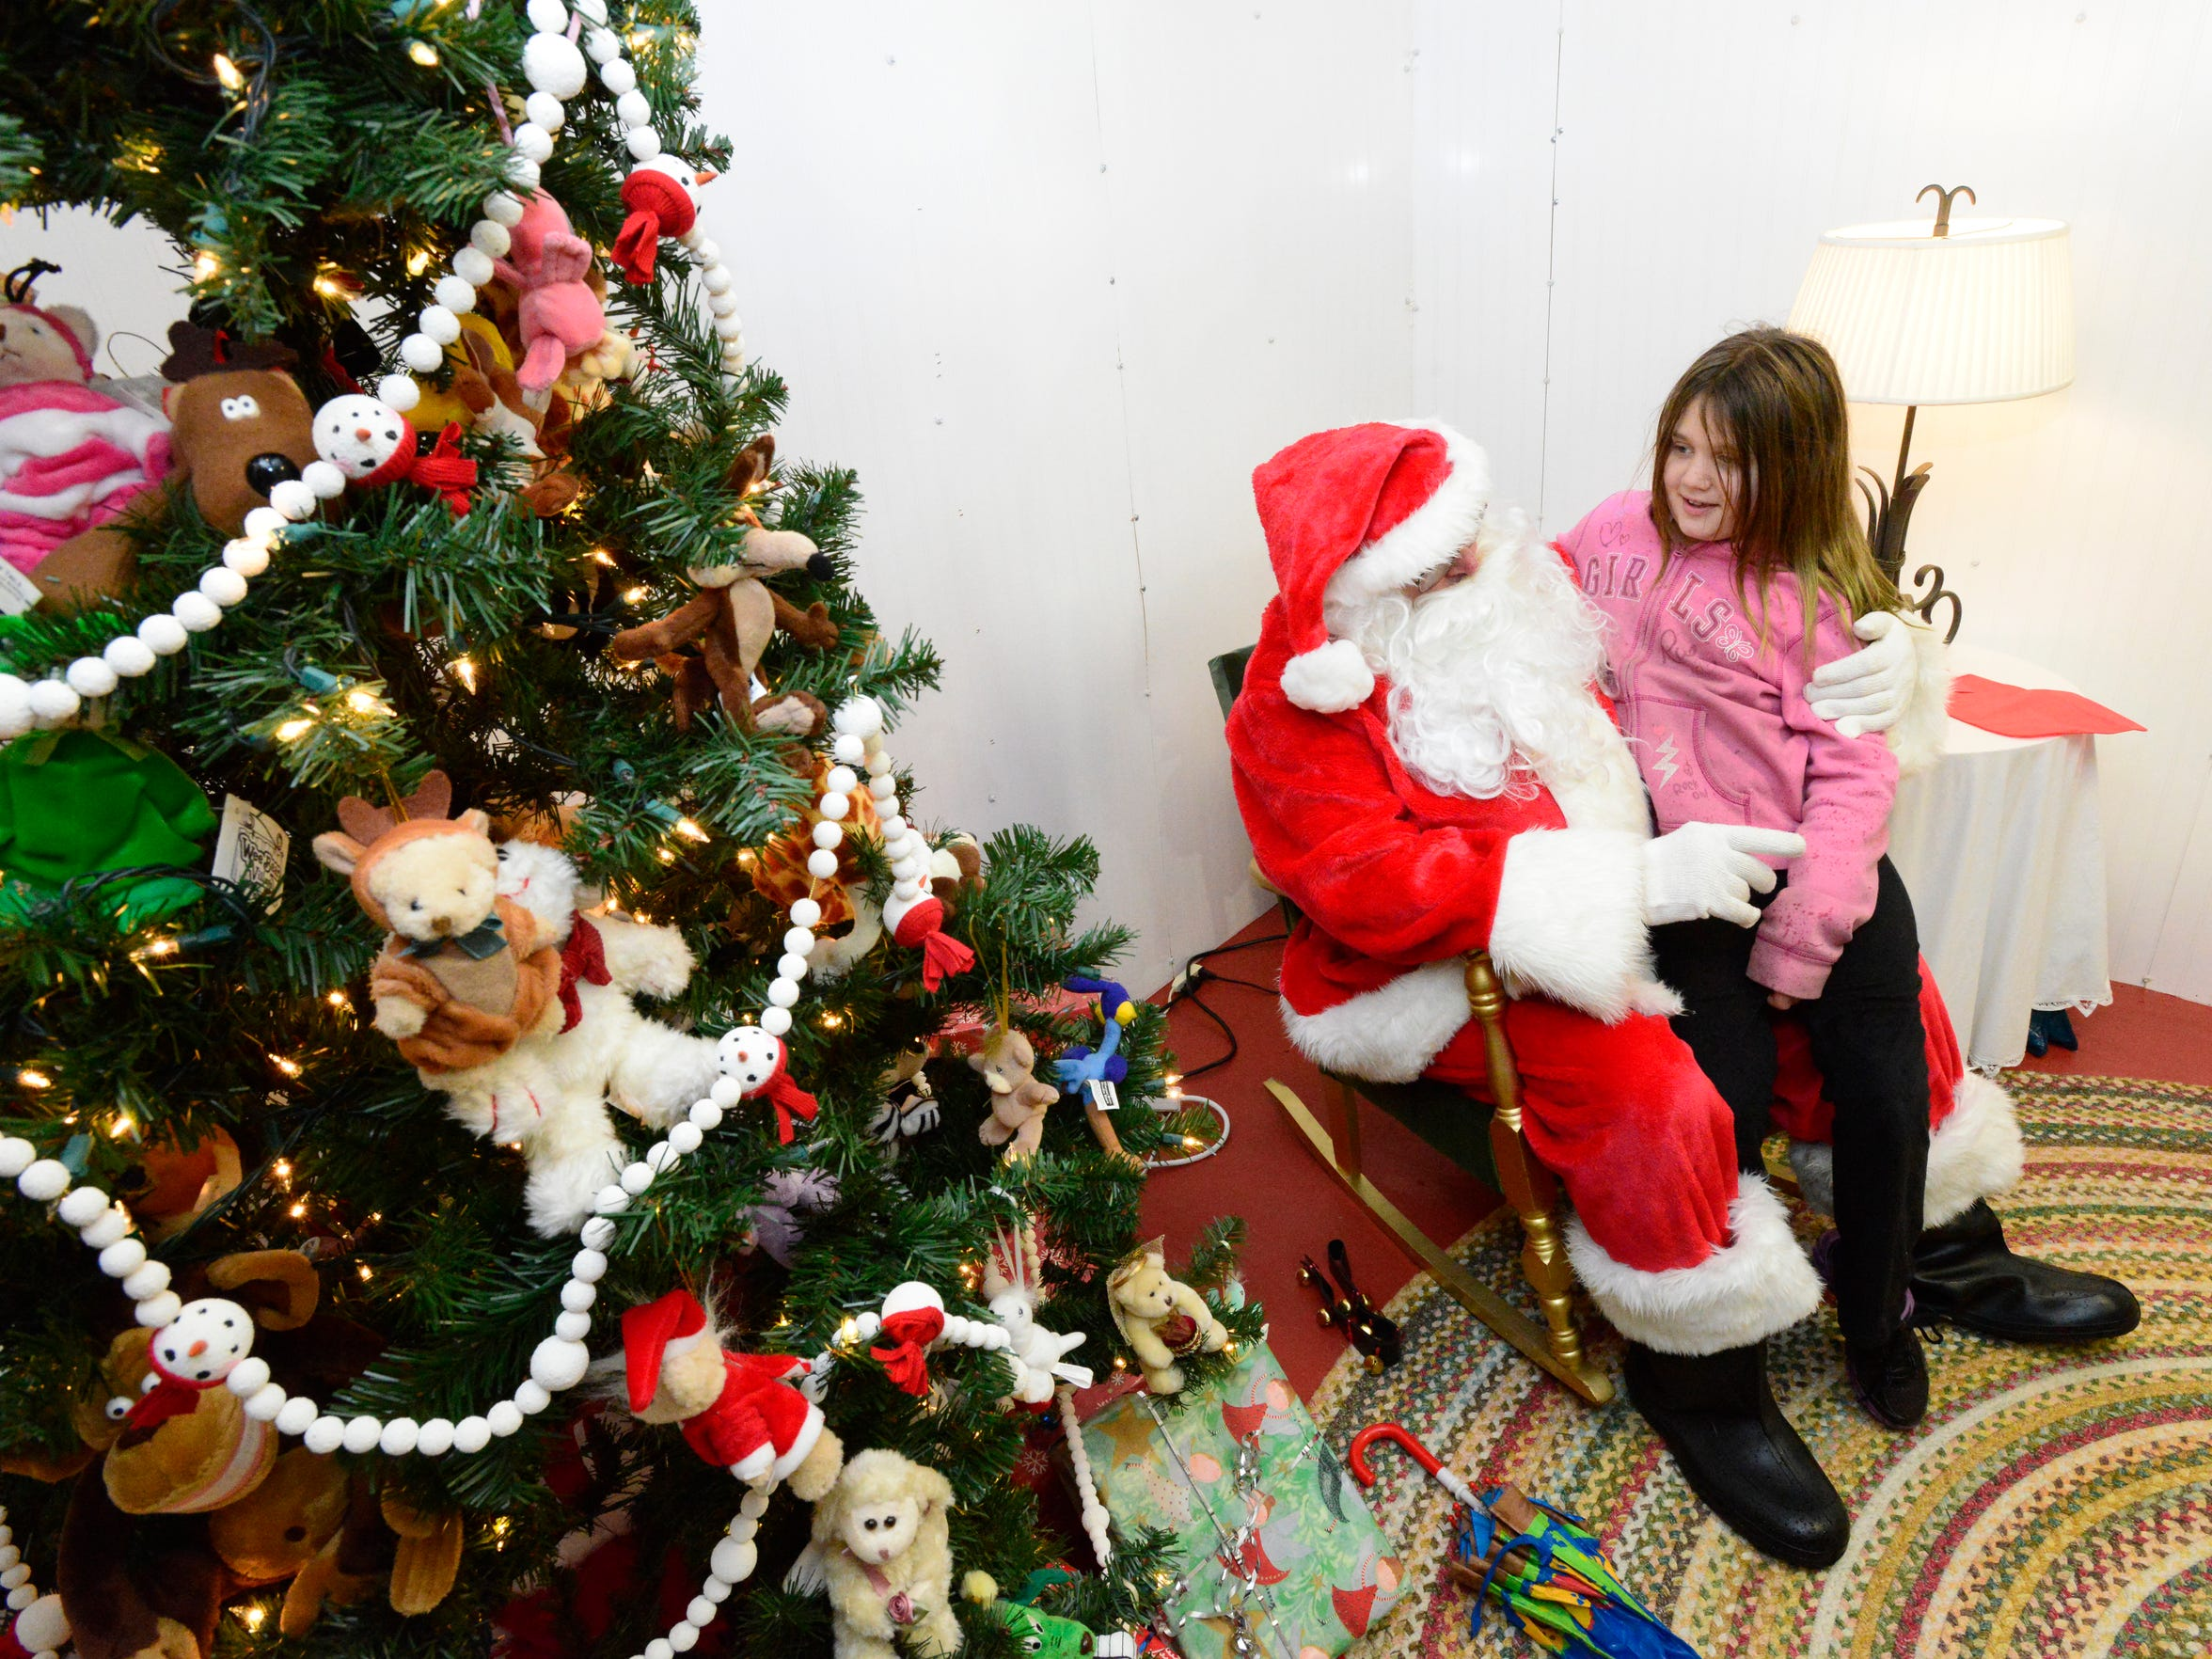 Kimberly Weber, 9, of Fremont, tells Santa she wants a remote control Optimus Prime Transformer for Christmas.